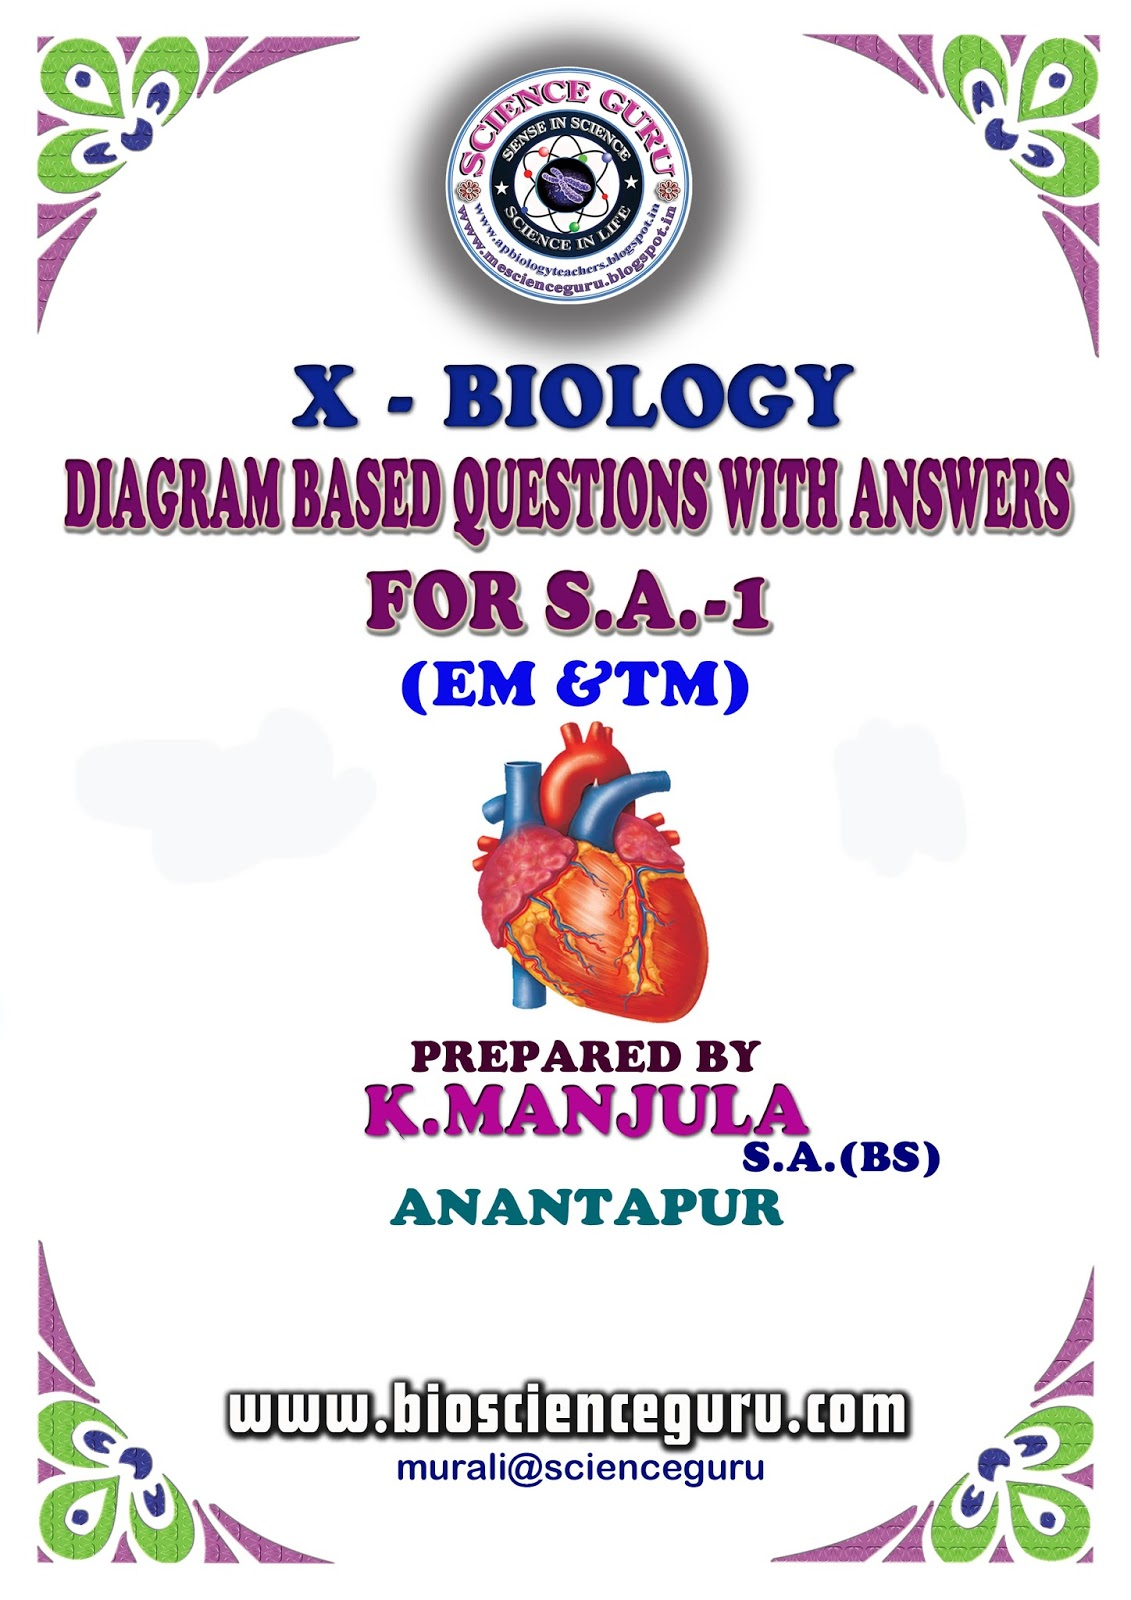 10th class diagram based questions and answers for sa 1 this booklet of diagram based questions with answers provide the questions under third and fifth competency of summative examination ccuart